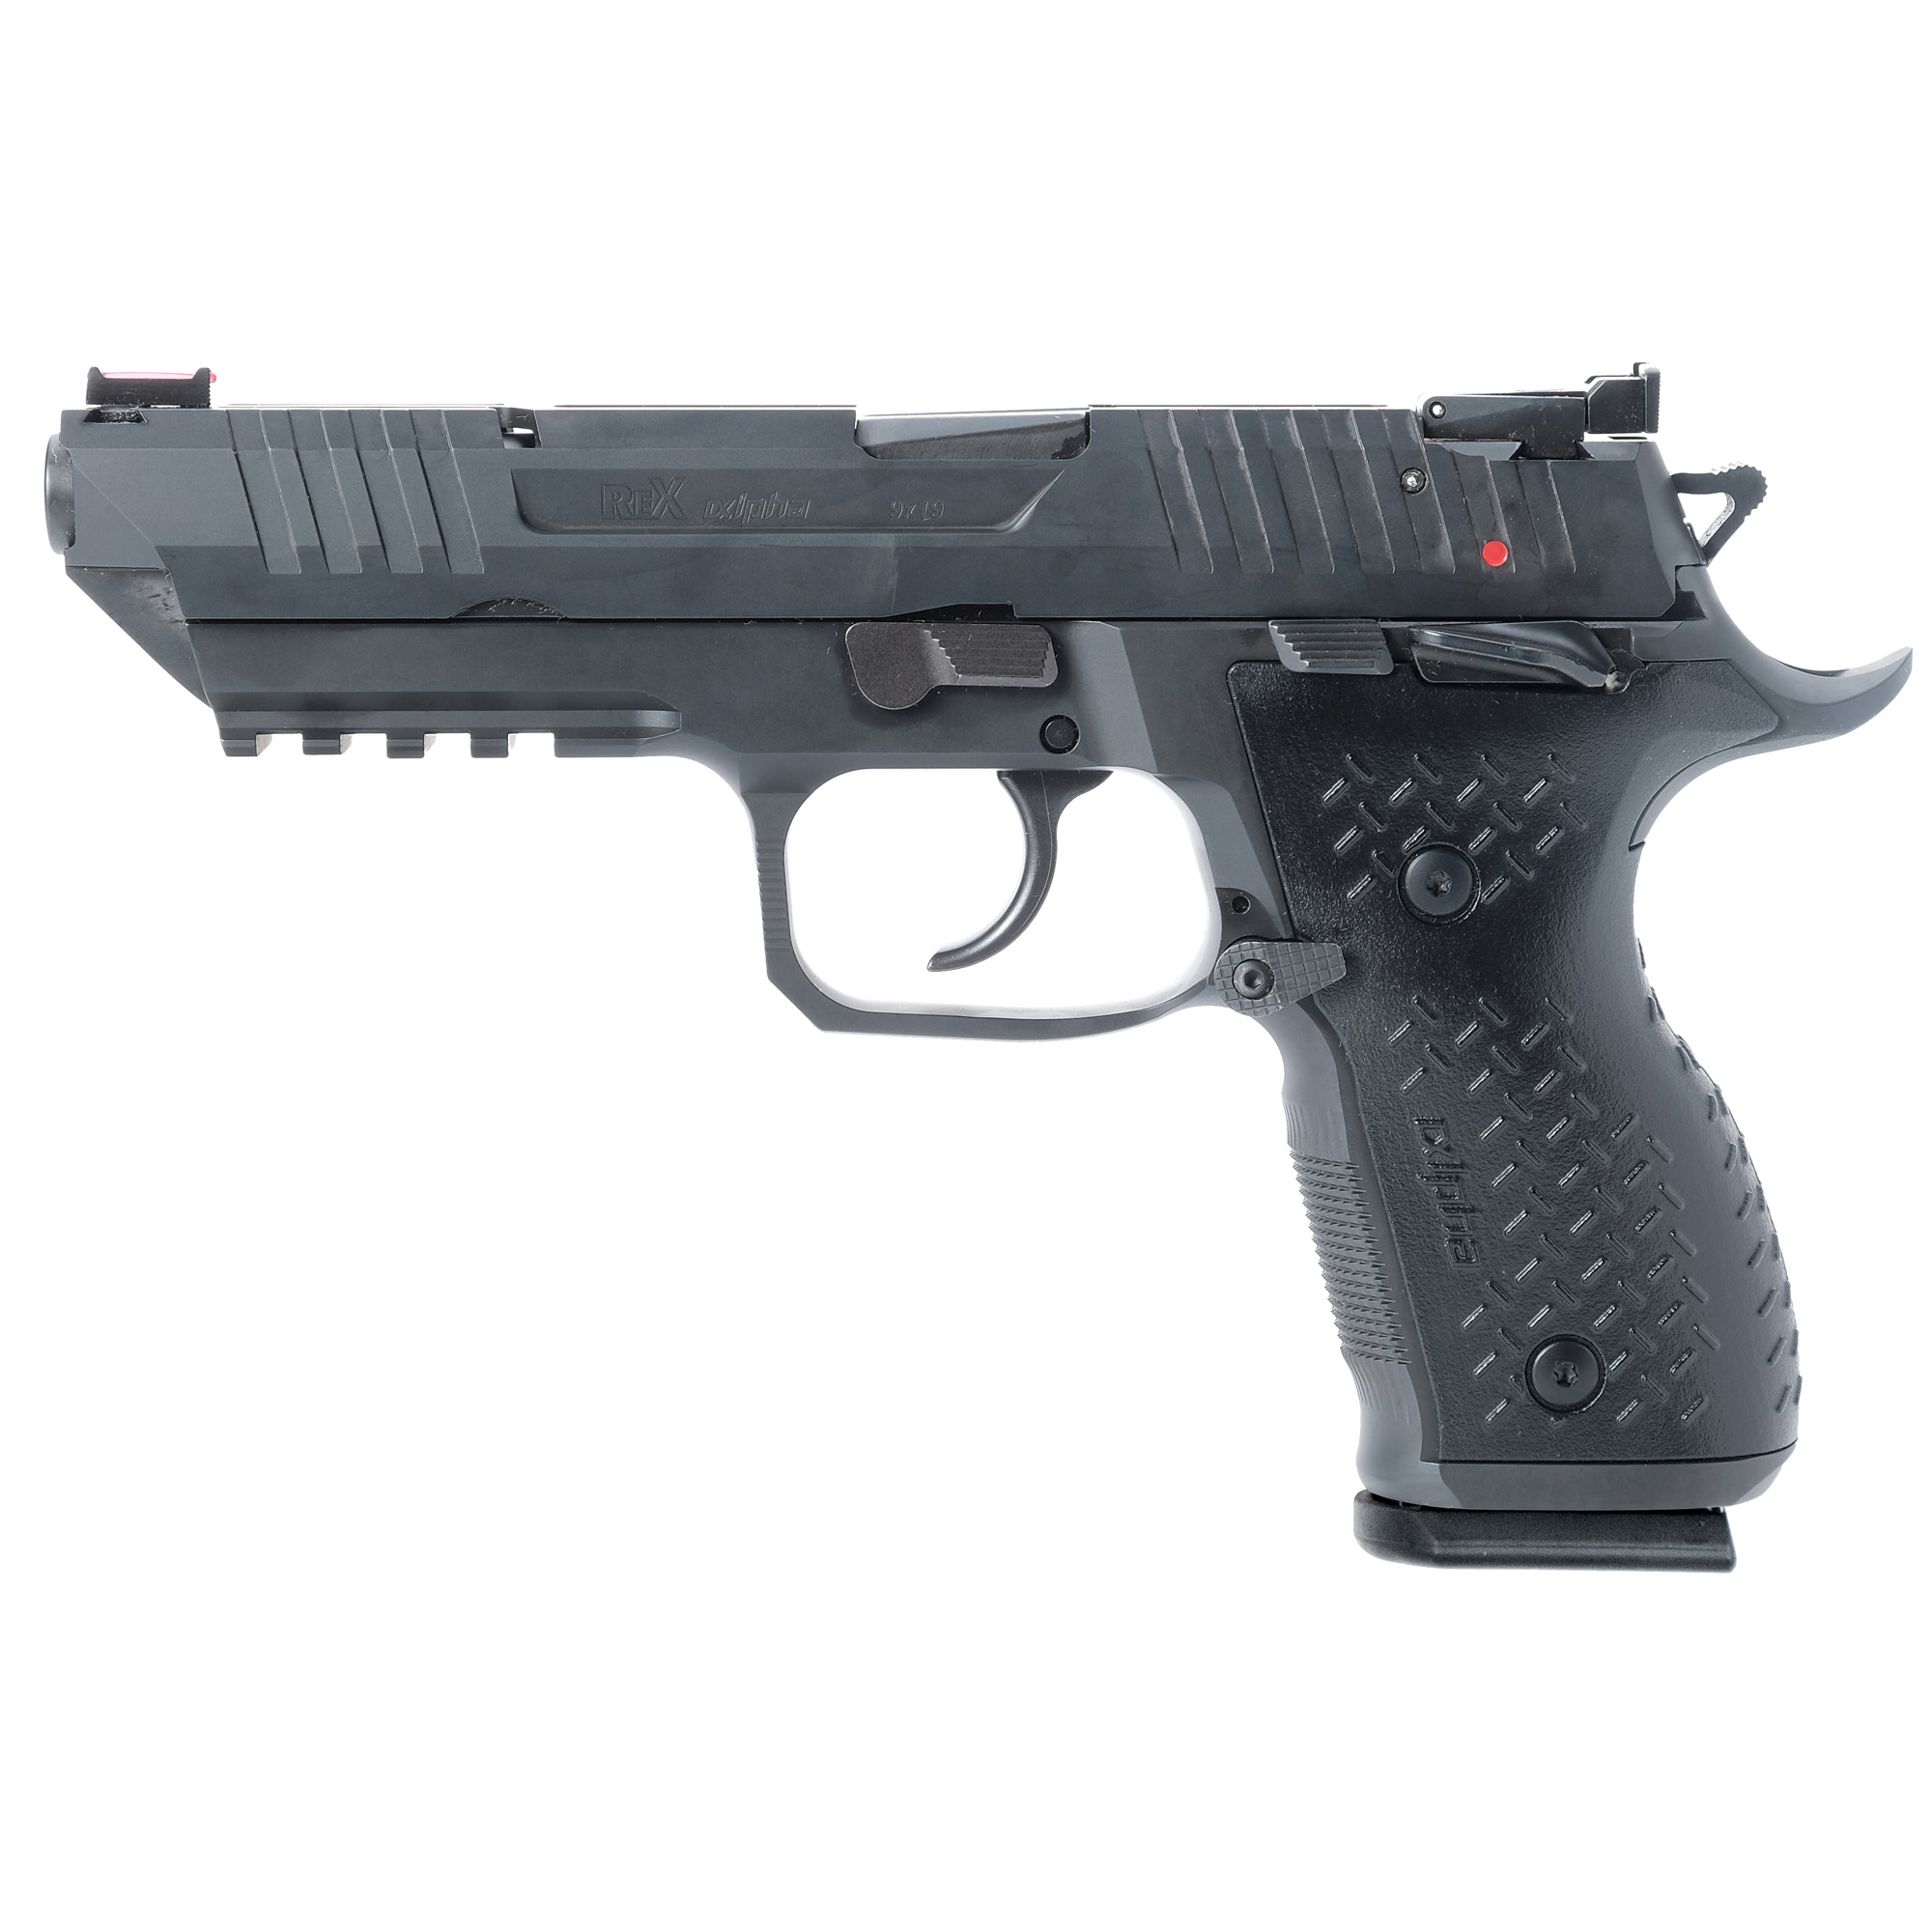 """The Rex Alpha is all about performance. The trigger mechanism is factory fine-tuned for each pistol to deliver a smooth double action pull and a short trigger reset in an out-of-the-box competition grade trigger. The full steel frame incorporates oversized ambidextrous manual safety levers"""" flared magazine well"""" aggressive checkering in front of the grip"""" extended magazine release"""" fiber optic front sight"""" and a fully adjustable black rear sight (windage/elevation)."""